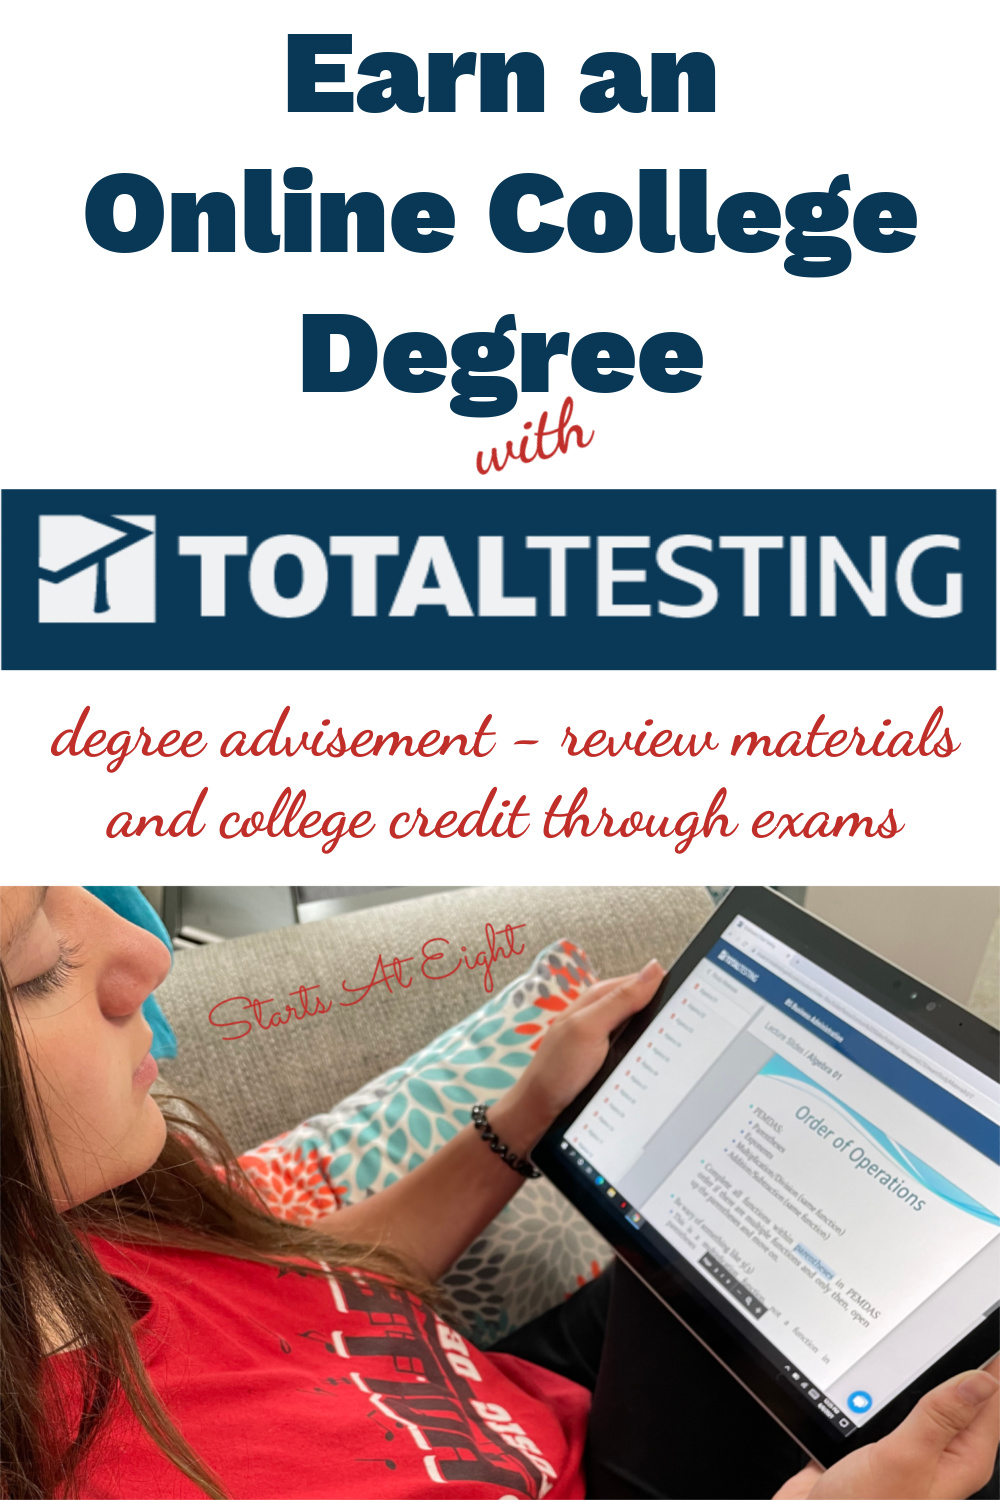 Earn an Online College Degree with Total Testing from Daemen College. In as little as 10 months your high schooler can complete 75% of their bachelor's degree! A review from Starts At Eight